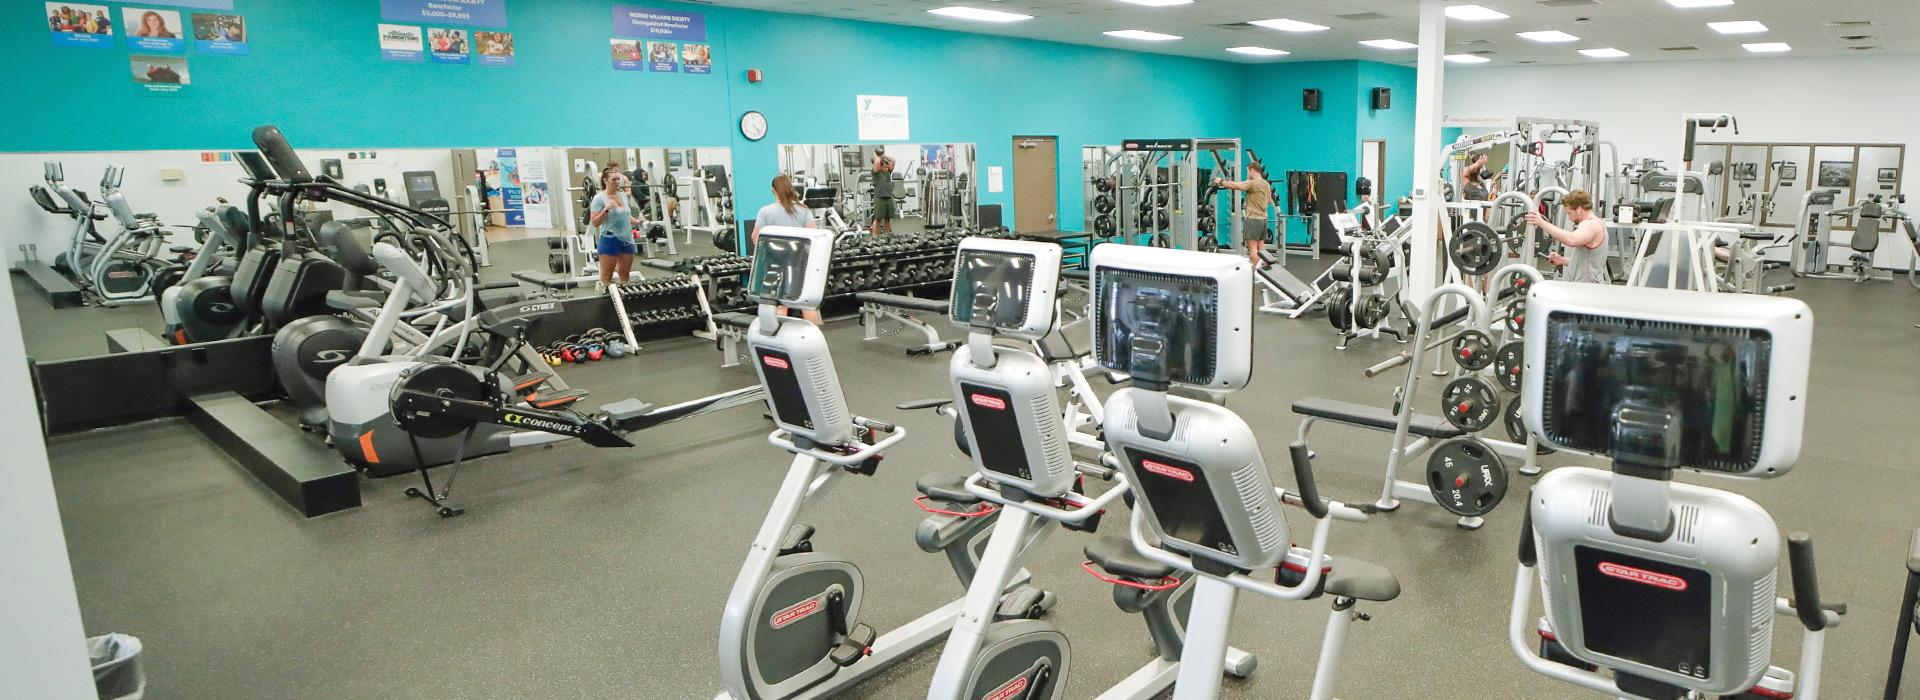 Cardio equipment including bikes, treadmills, steppers and ellipticals in the wellness center at the Hilltop Family YMCA